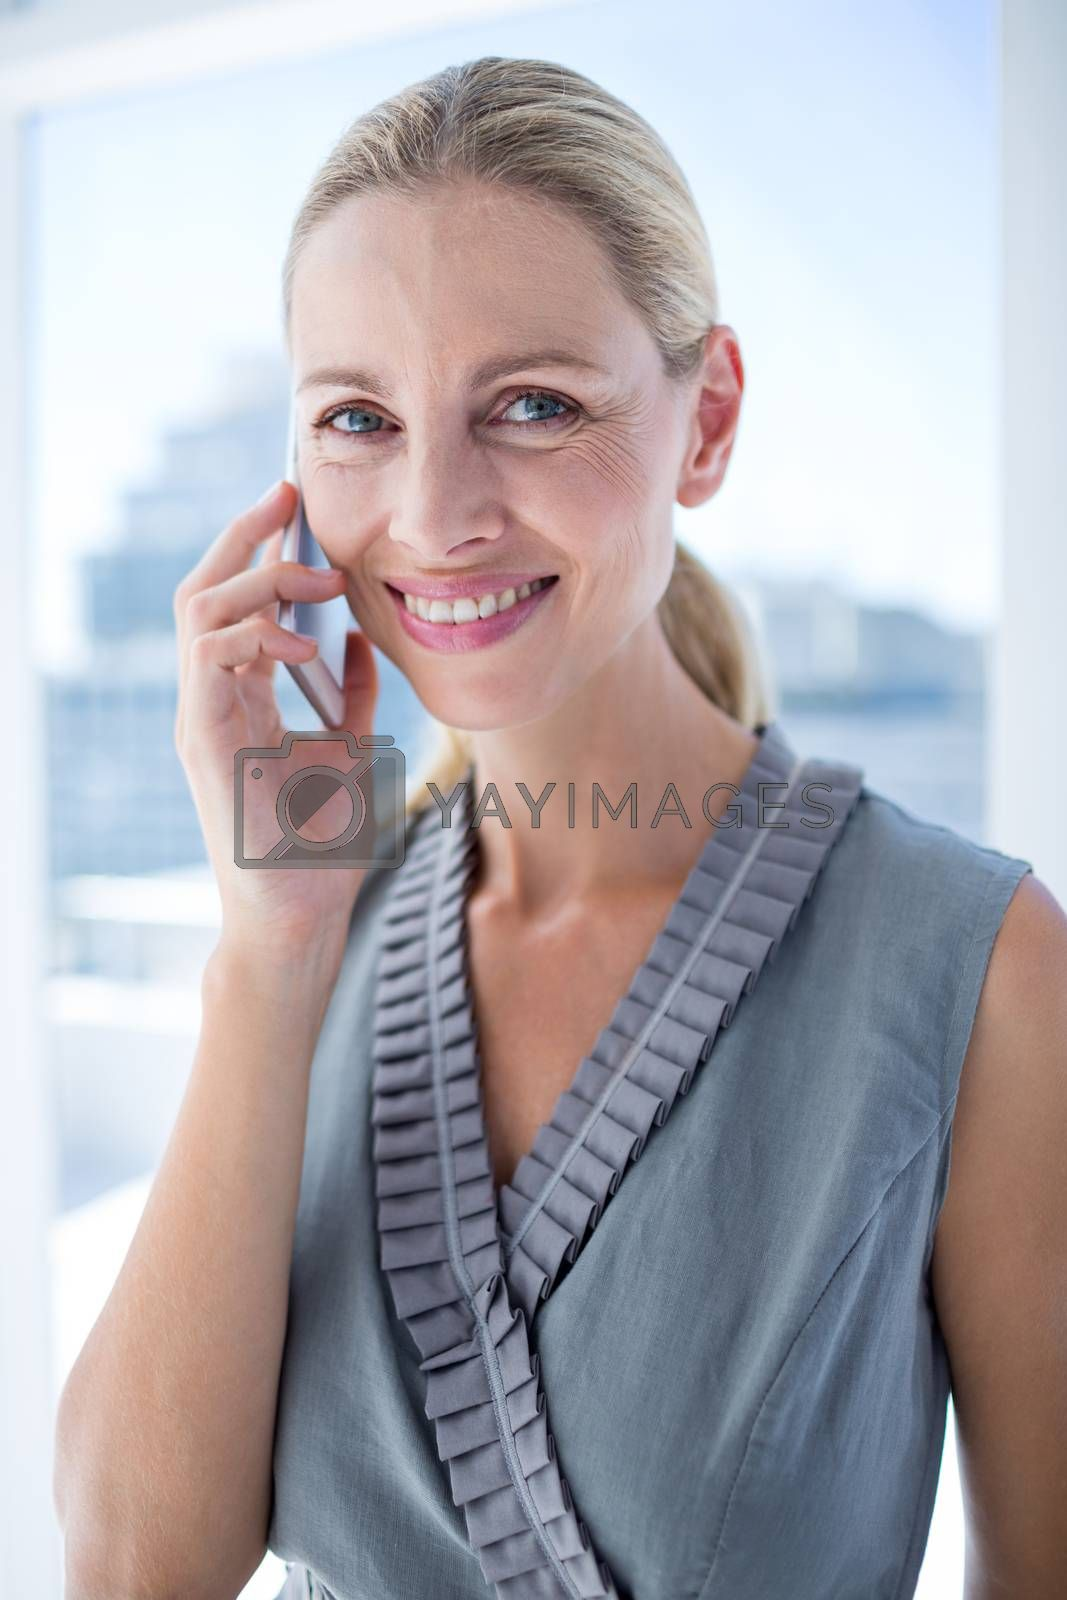 Royalty free image of Smiling businesswoman on the phone by Wavebreakmedia